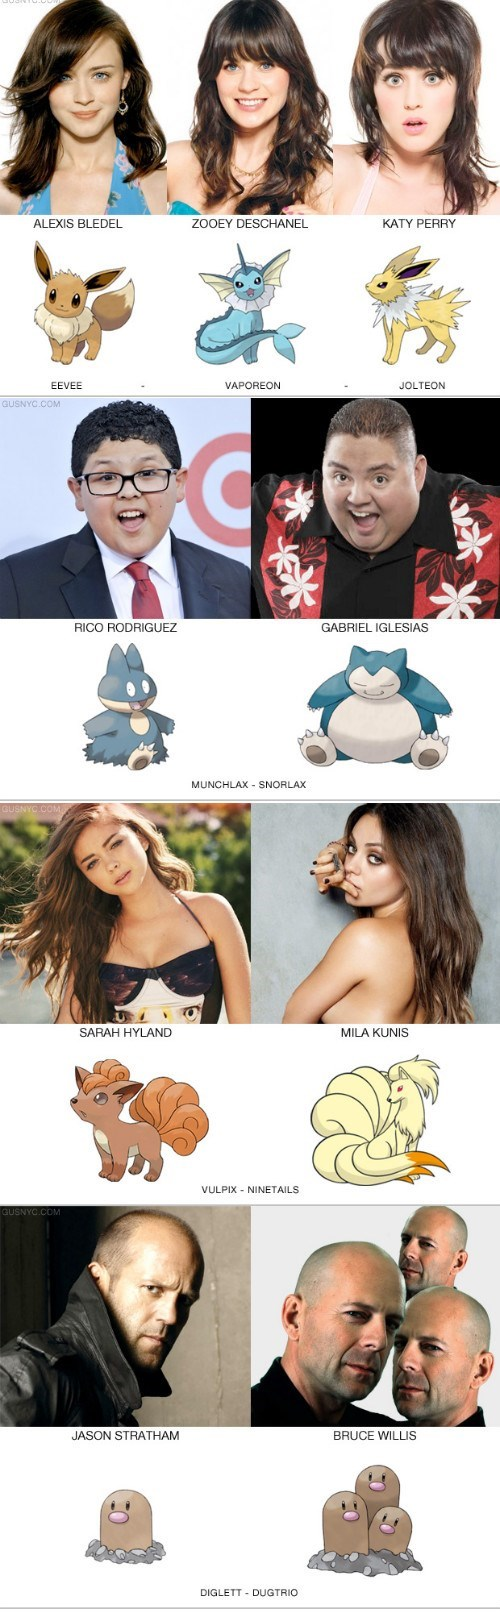 Pokémon,katy perry,mila kunis,bruce willis,pokemon evolutions,zooey deschanel,celeb